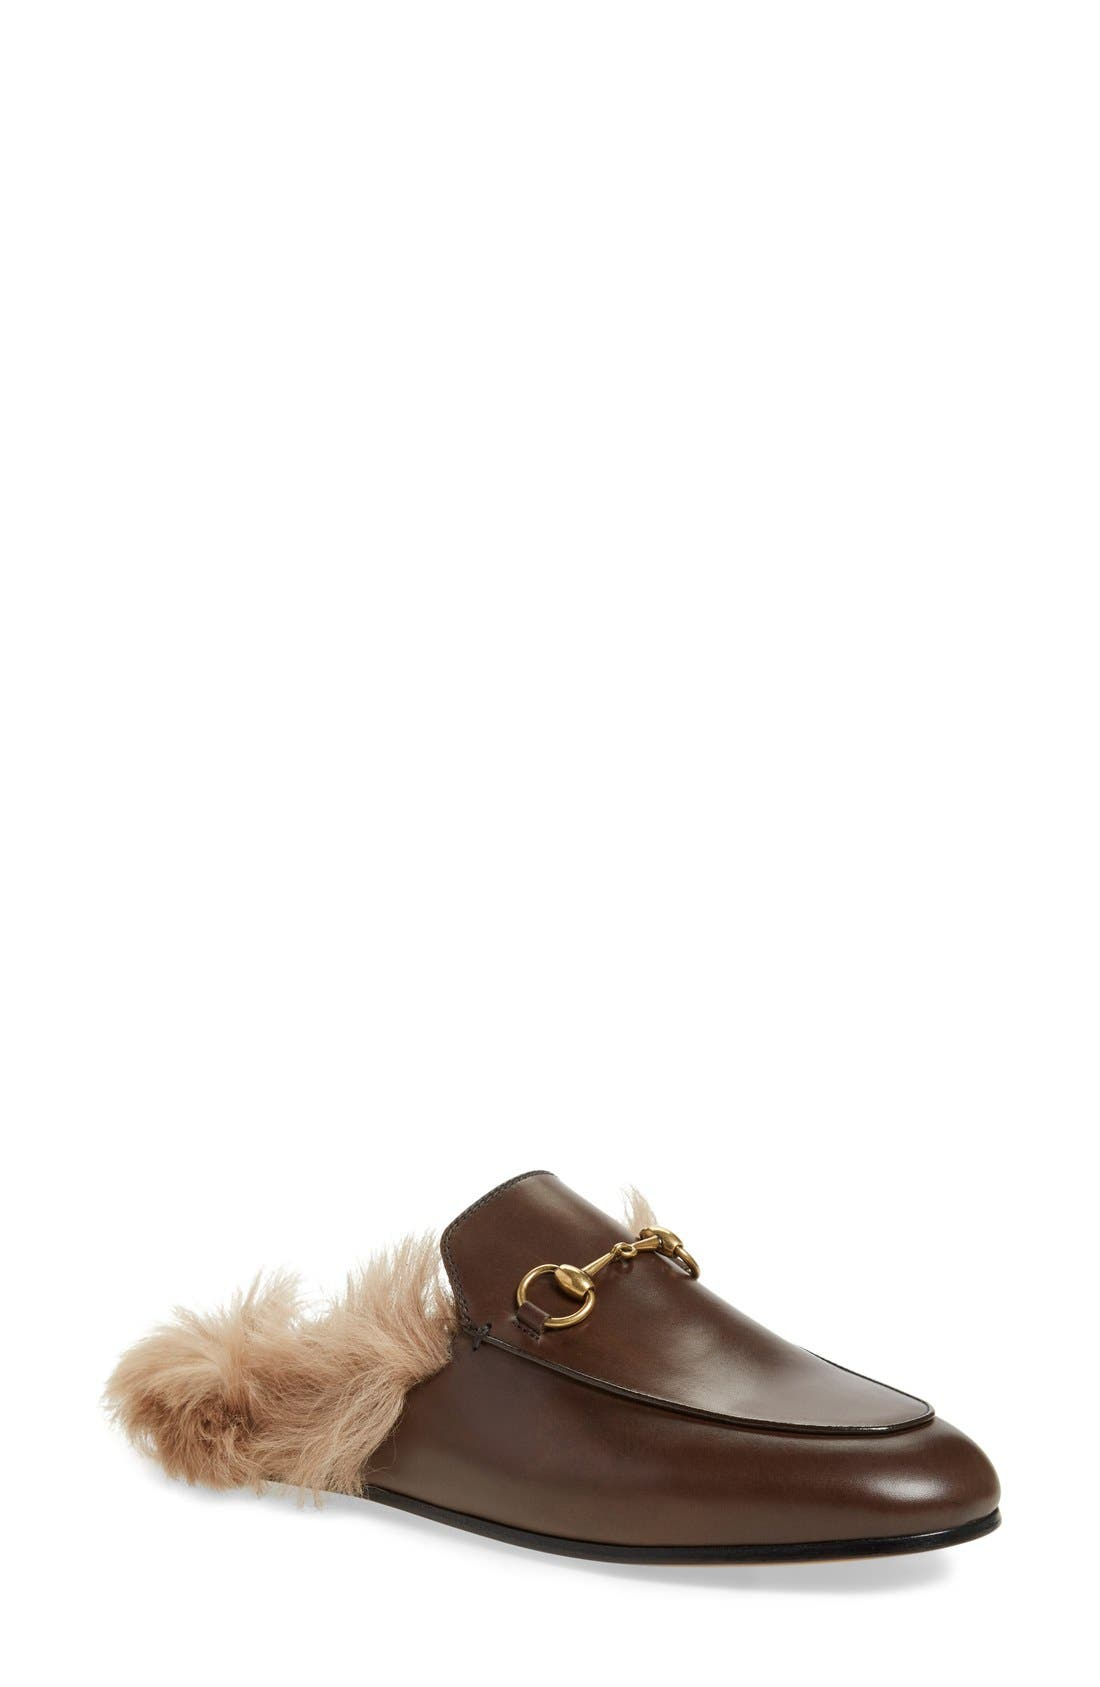 Main Image - Gucci 'Princetown' Genuine Shearling Loafer Mule (Women)